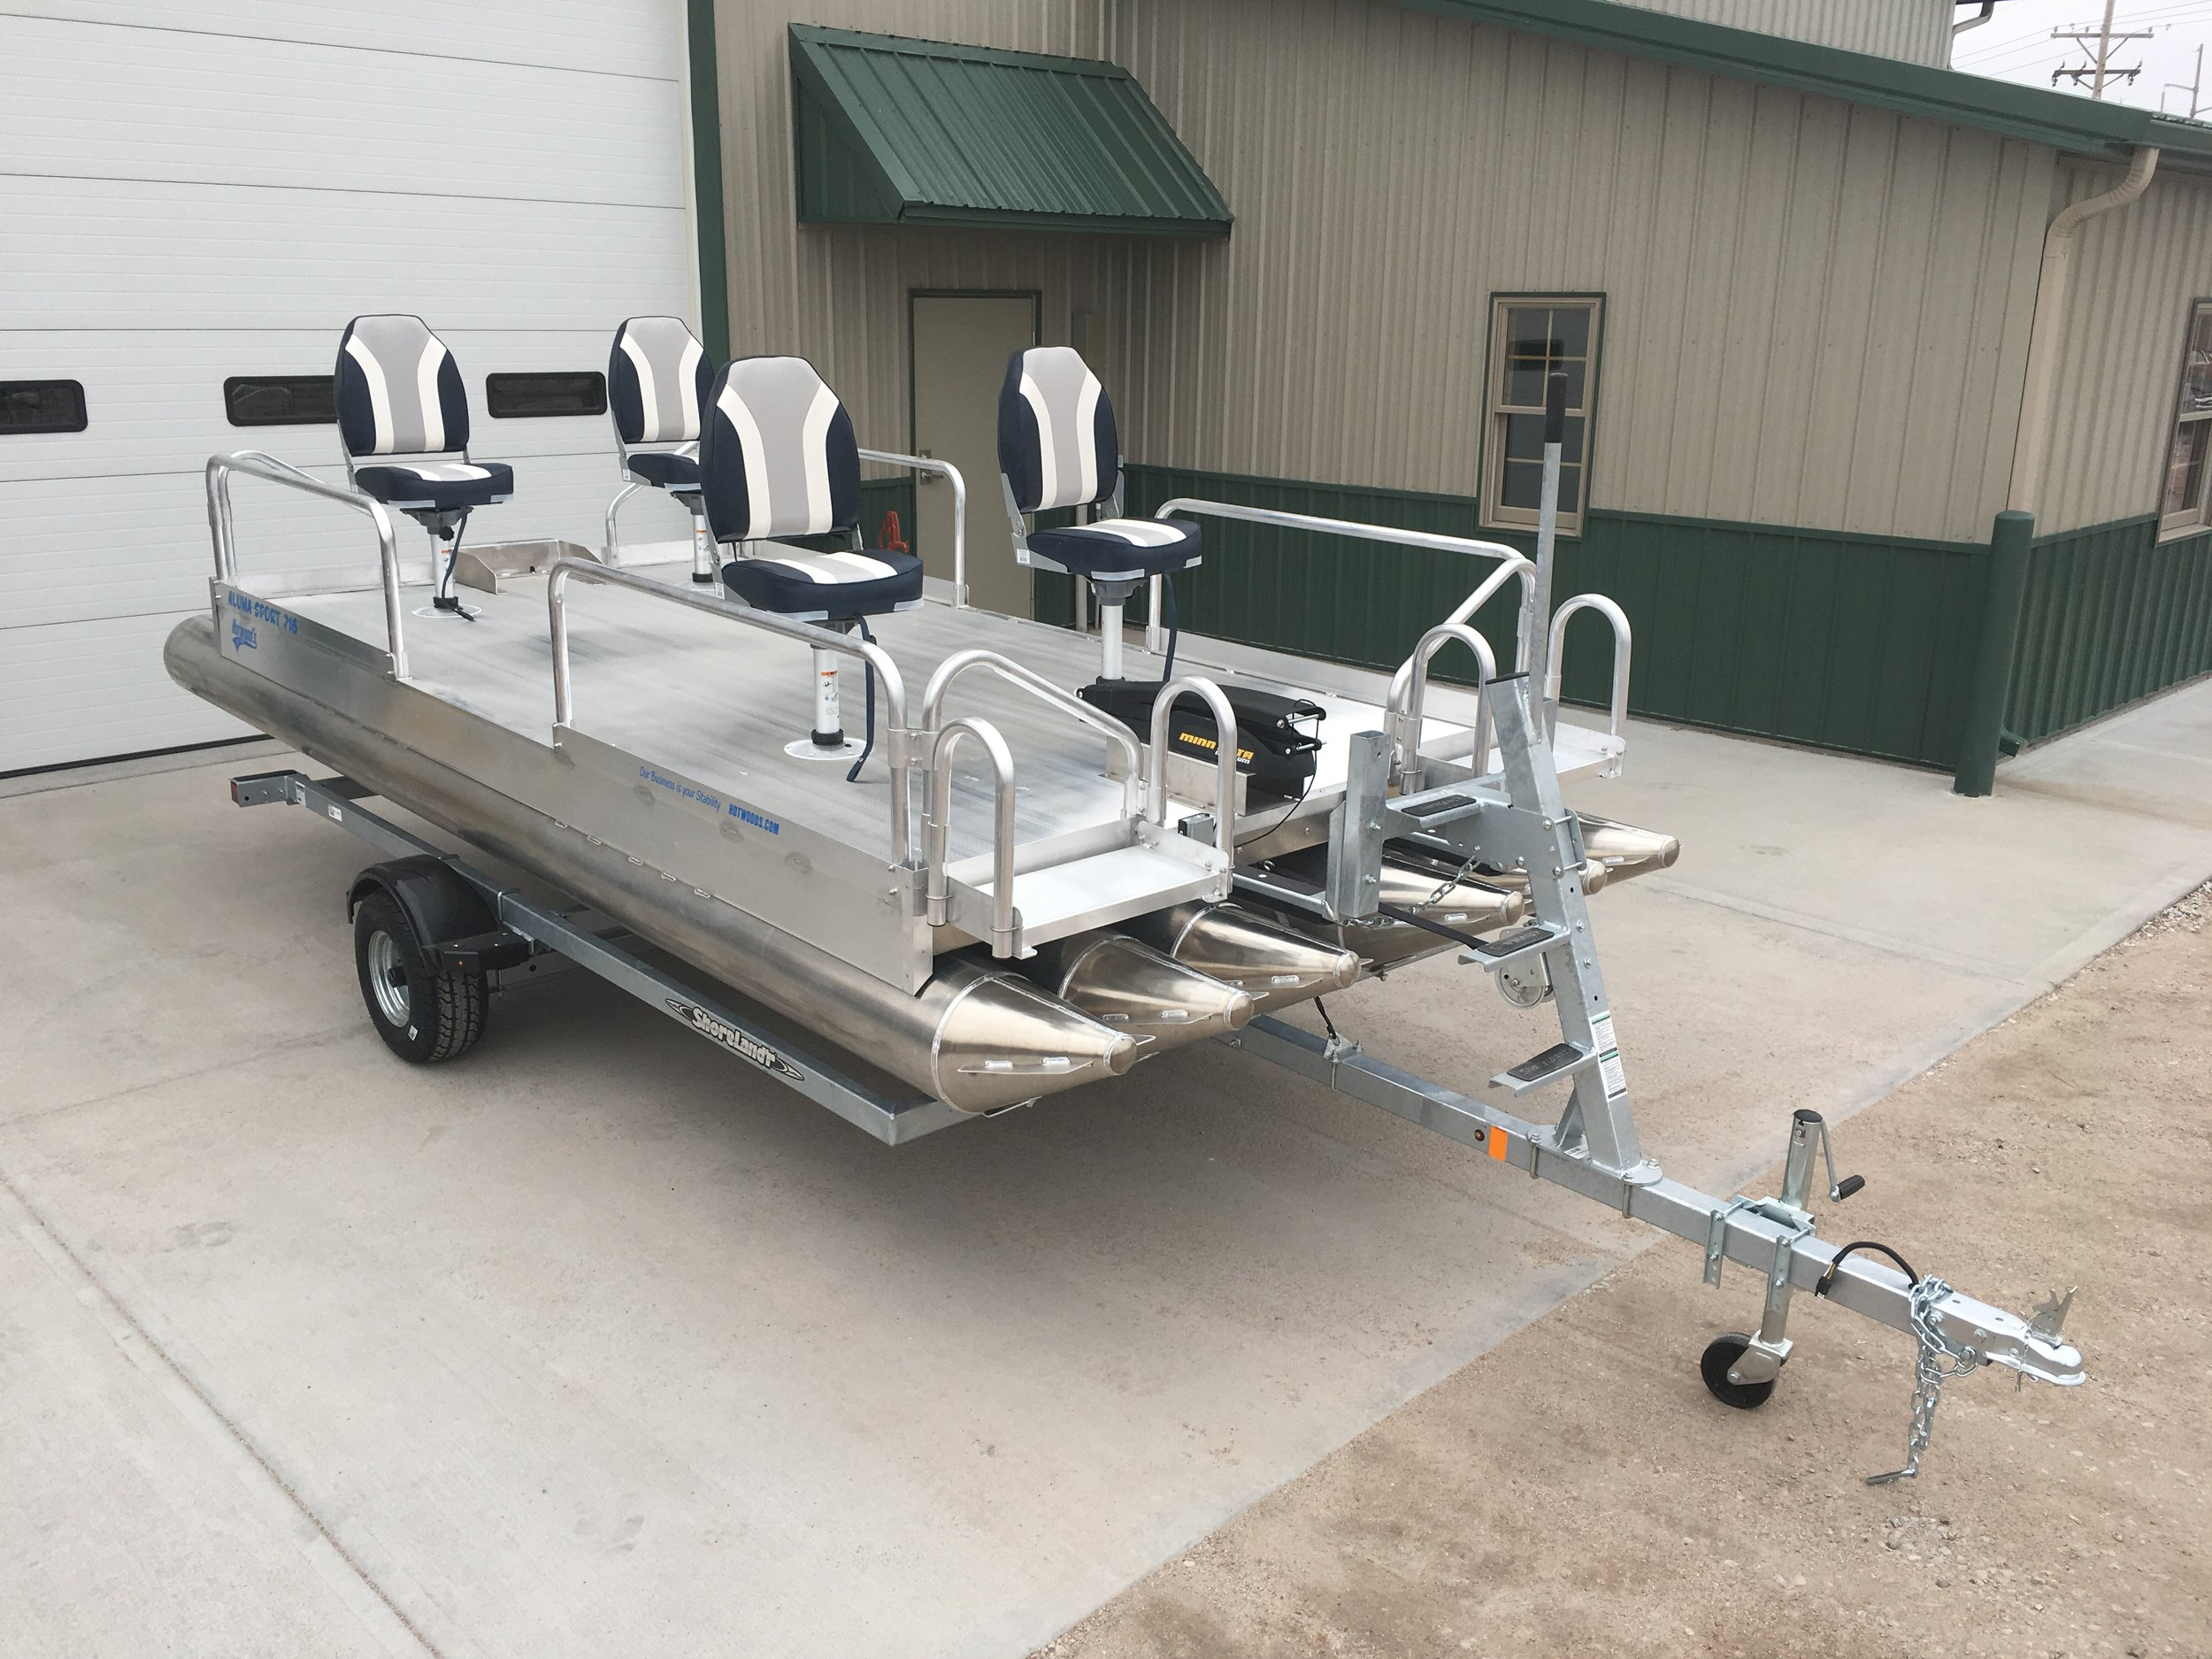 This all new pontoon boat has taken over 2 years to research and make sure it was right before we added it to the line of quality Hotwood's boats. Like all of our designs, it is unmatched with quality and stability, along with the fact, this is the boat you will give to your grandchildren.